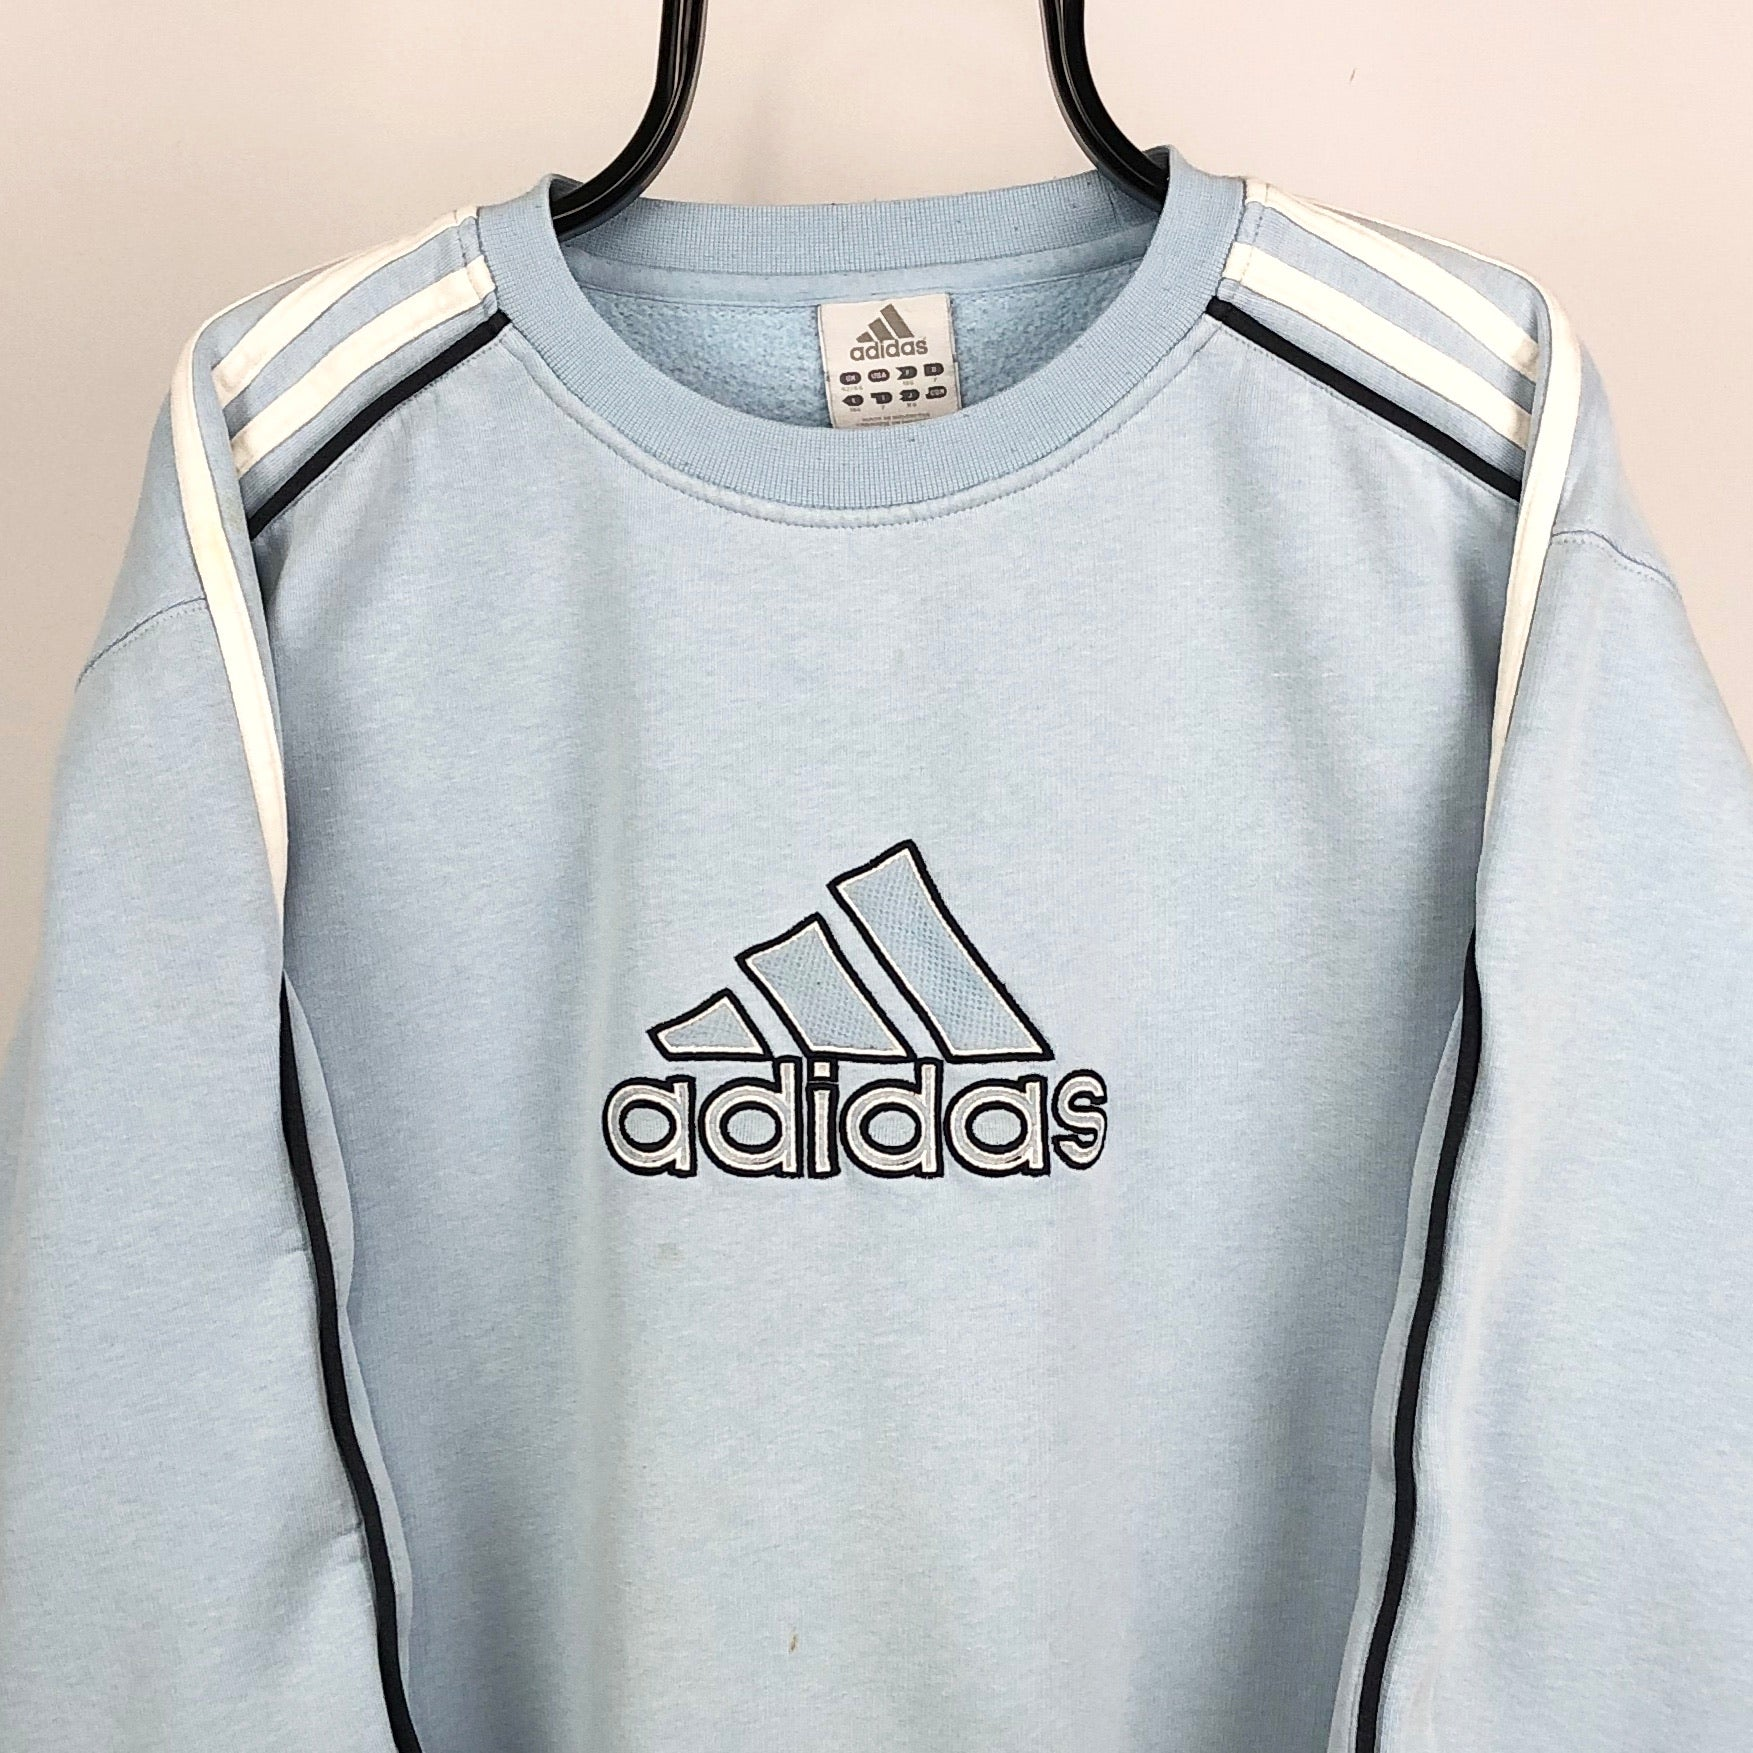 Vintage Adidas Spellout Sweatshirt in Baby Blue - Men's Large/Women's XL